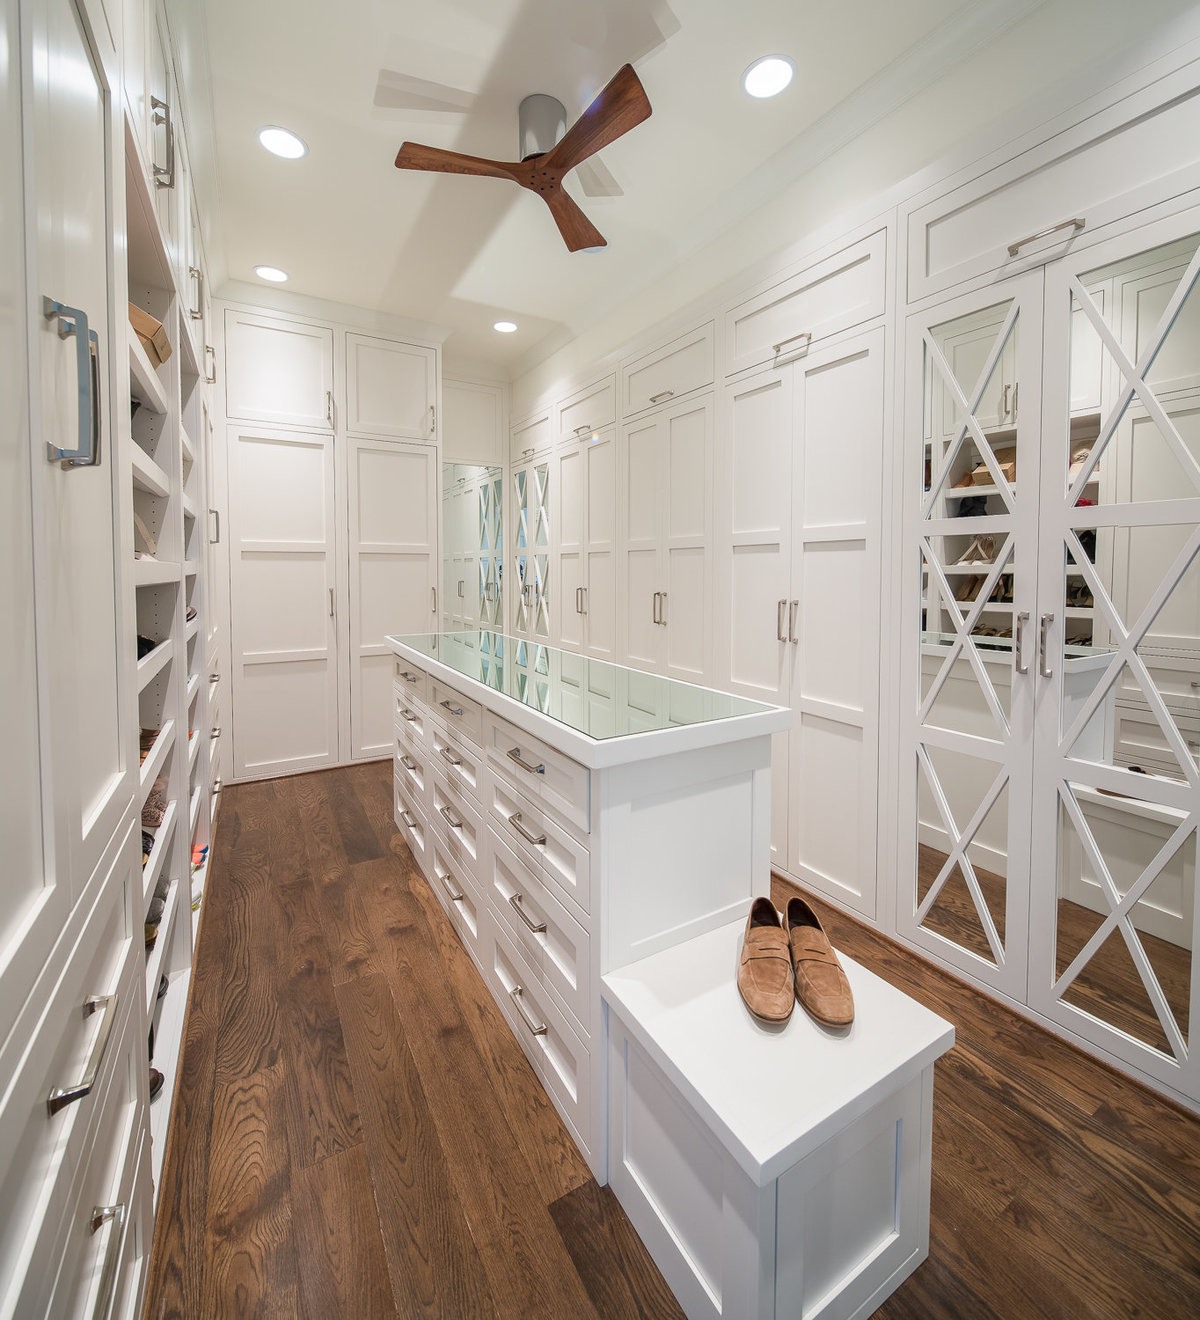 Custom Cabinet Design | Atlanta Interior Designer